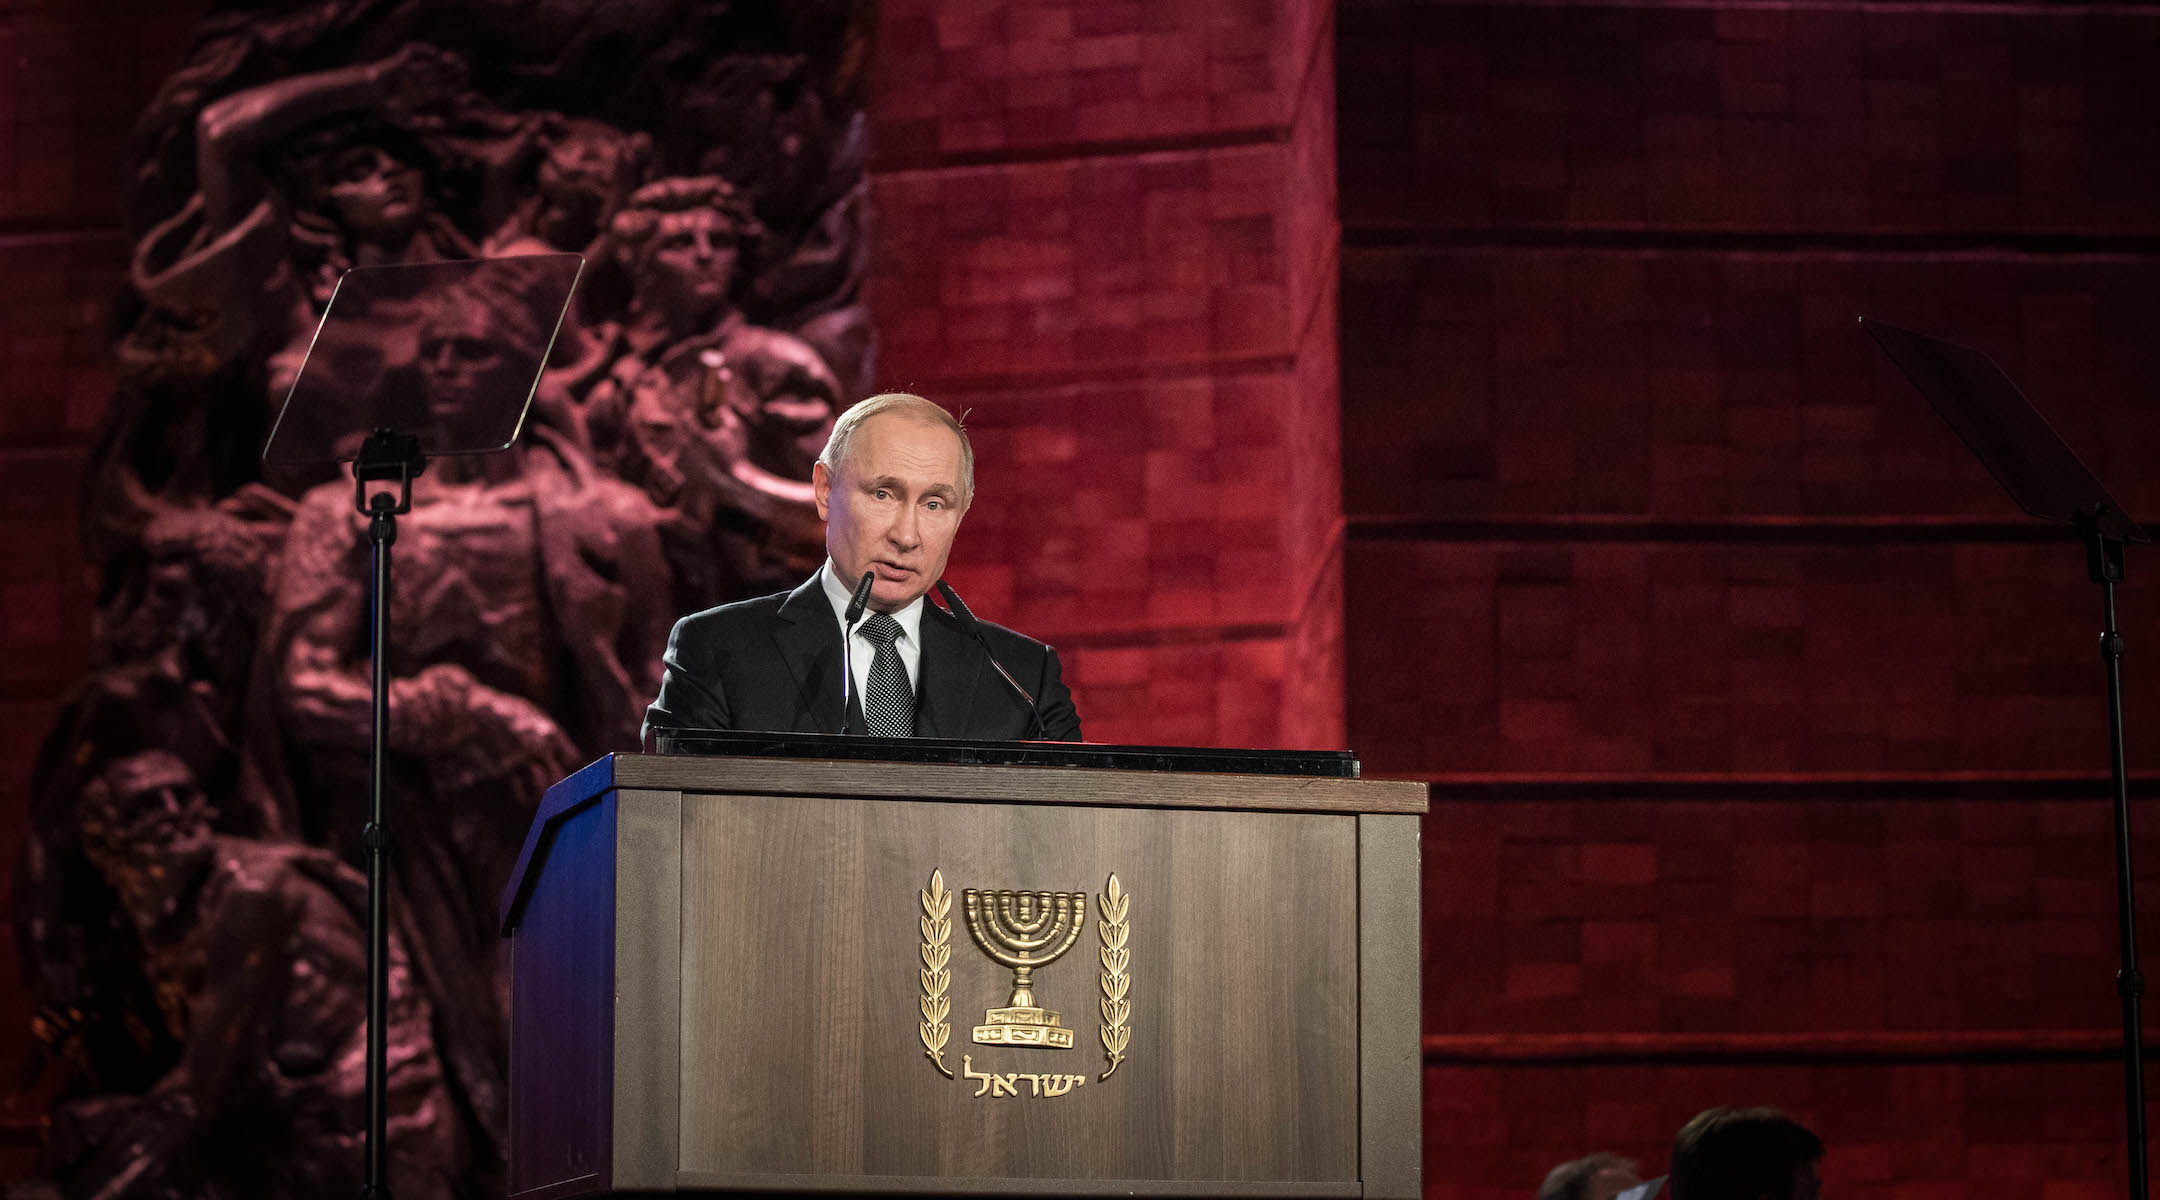 Russian president speaks from podium with emblem of Israel on it.